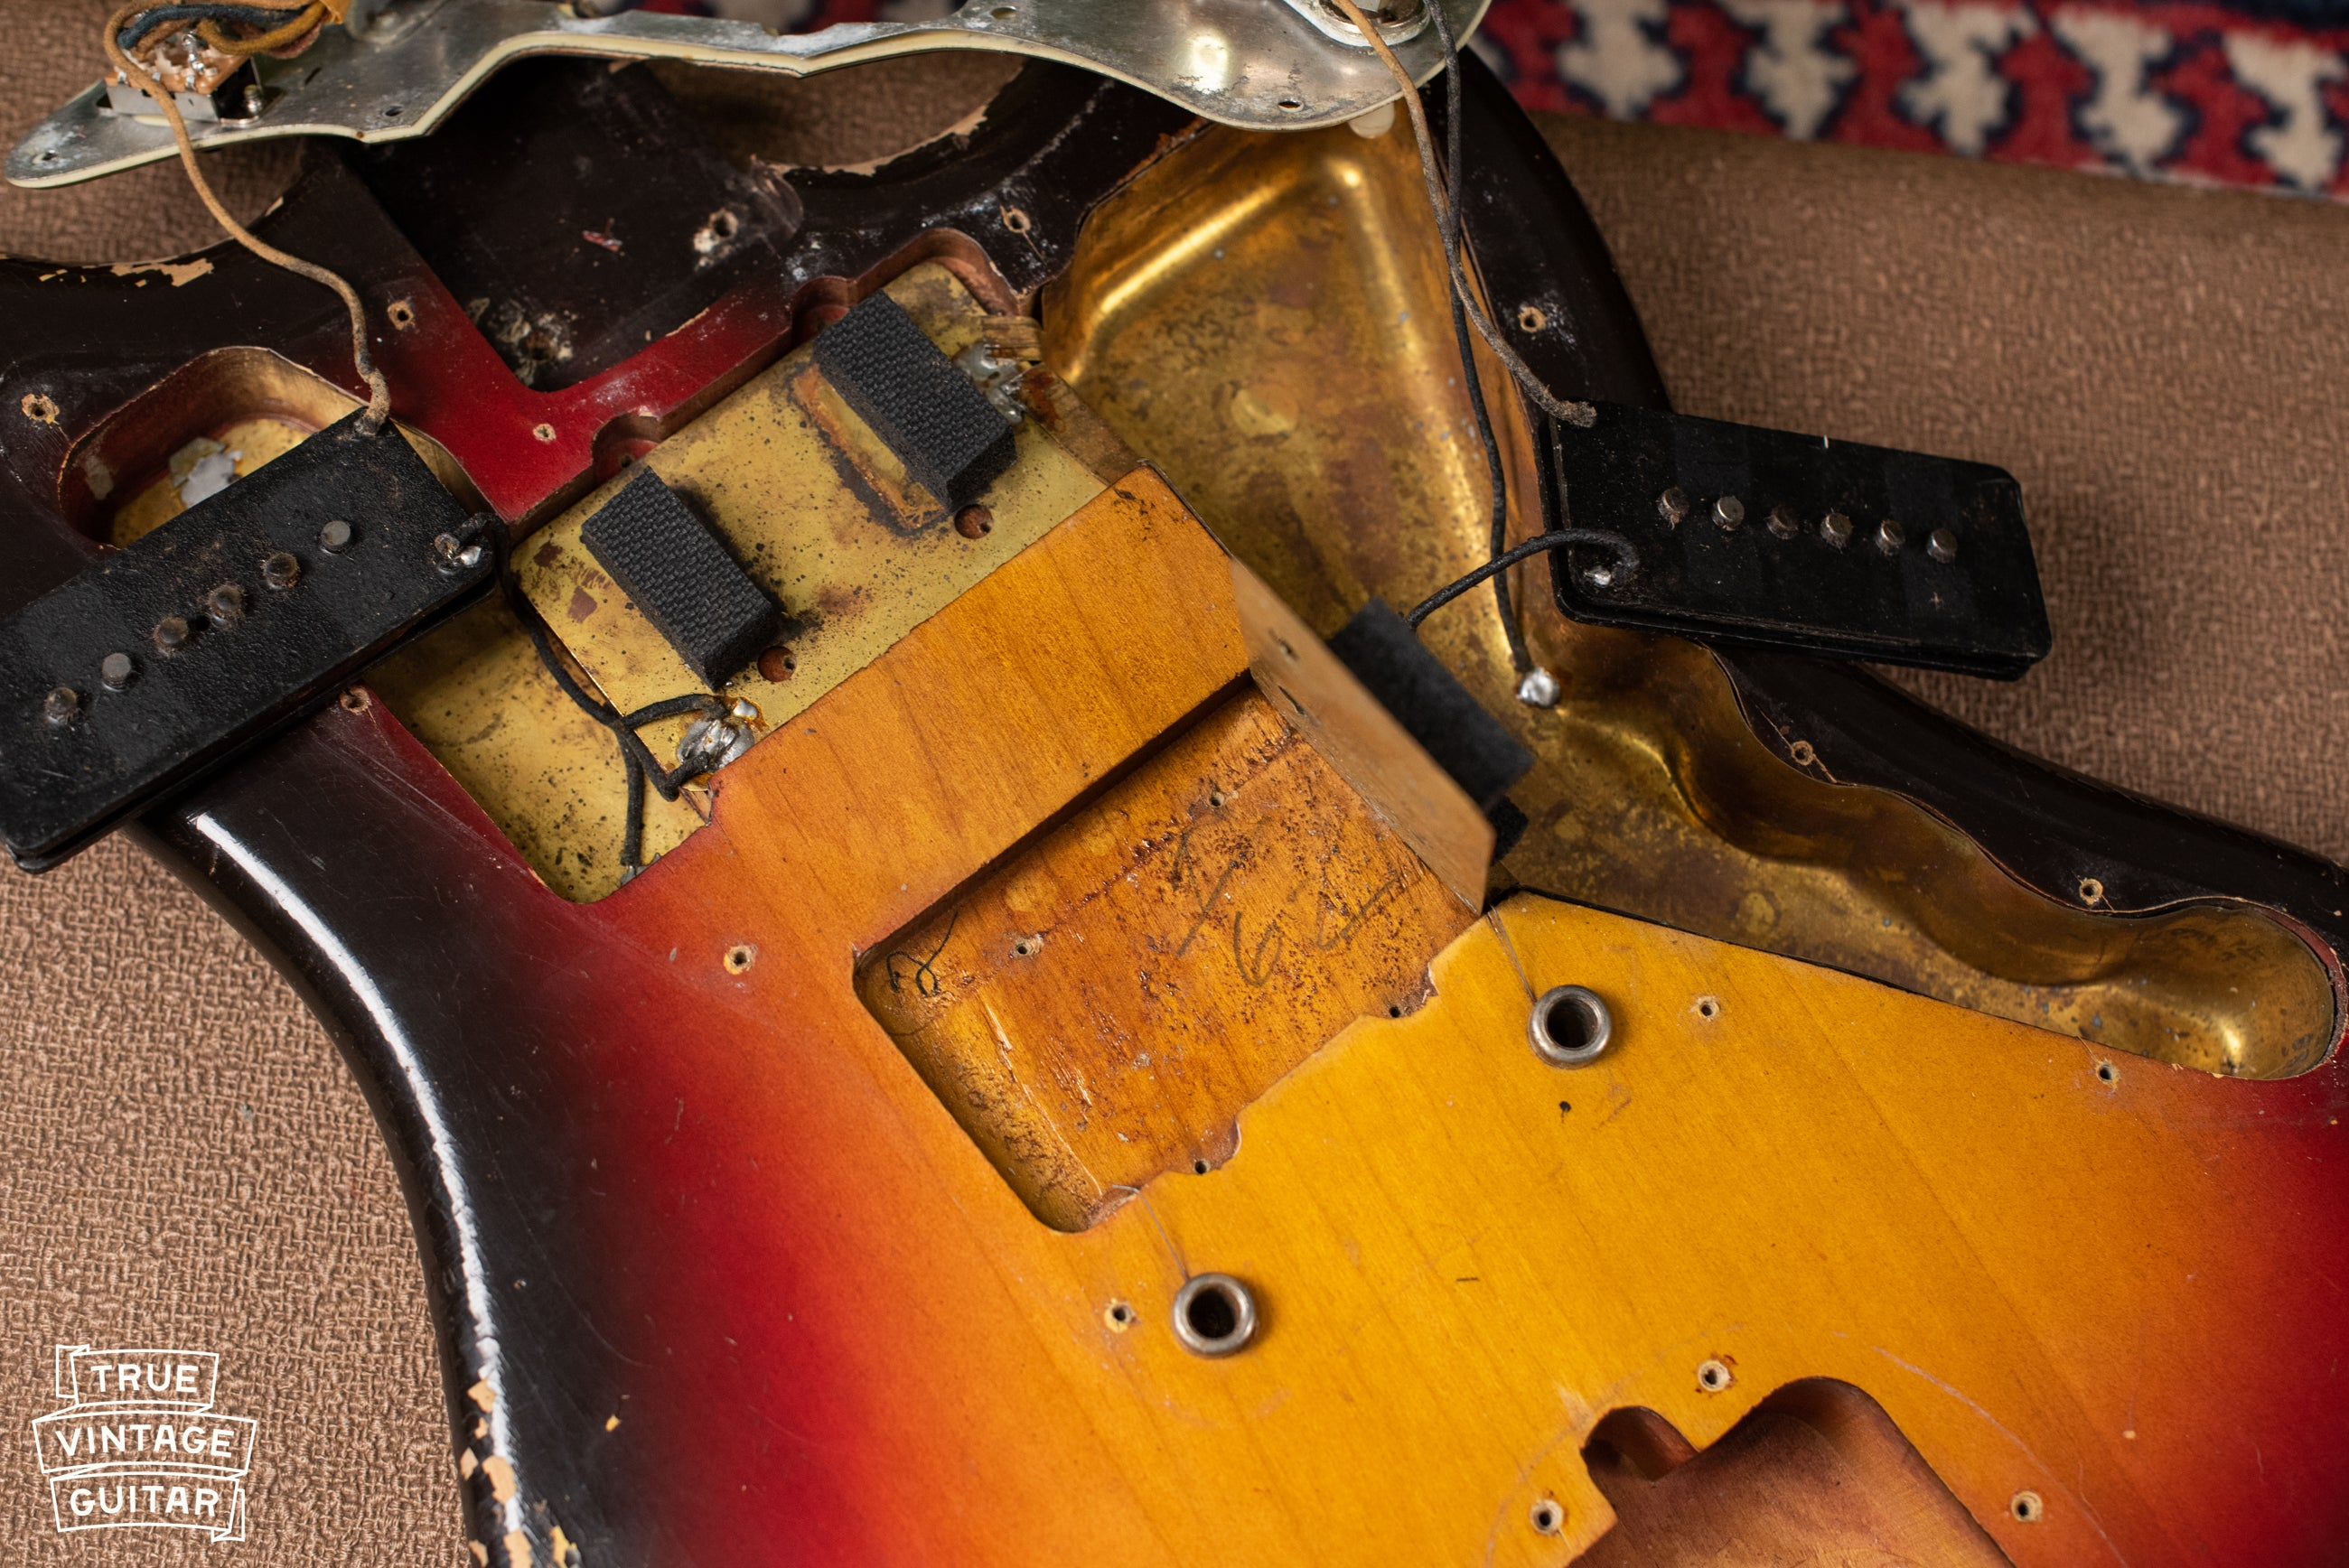 Fender guitar body date